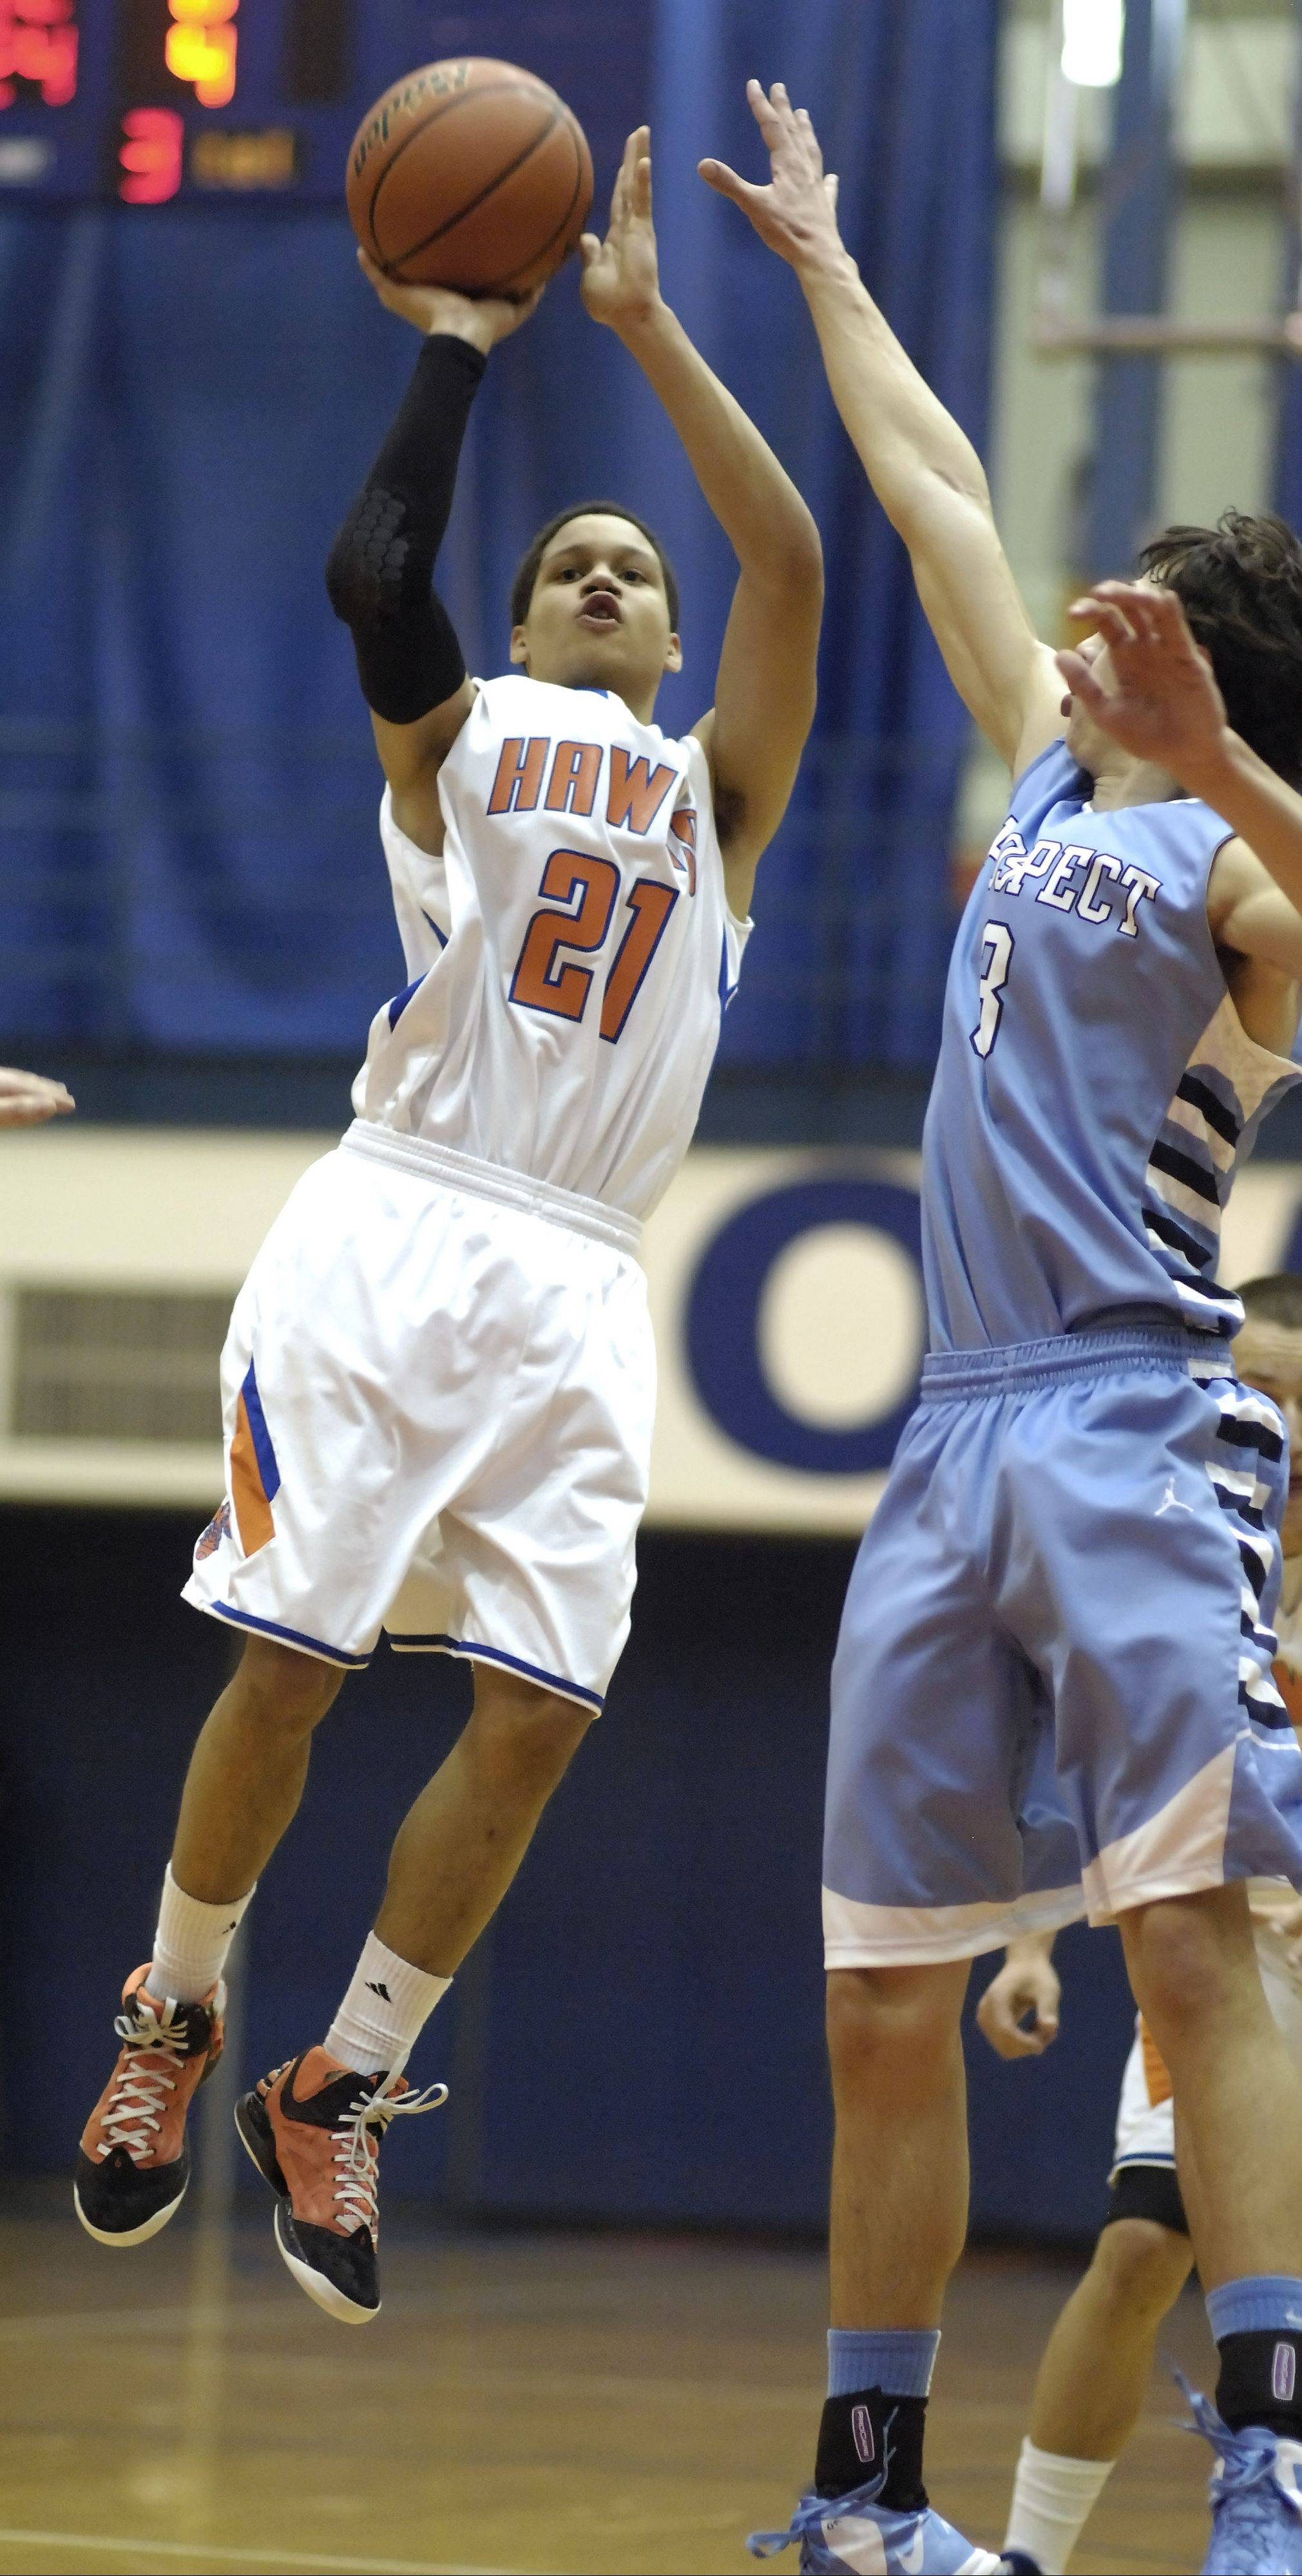 Hoffman Estates' Iziah Robinson takes a shot against the defense of Prospect's Bobby Frasco during Tuesday's game.